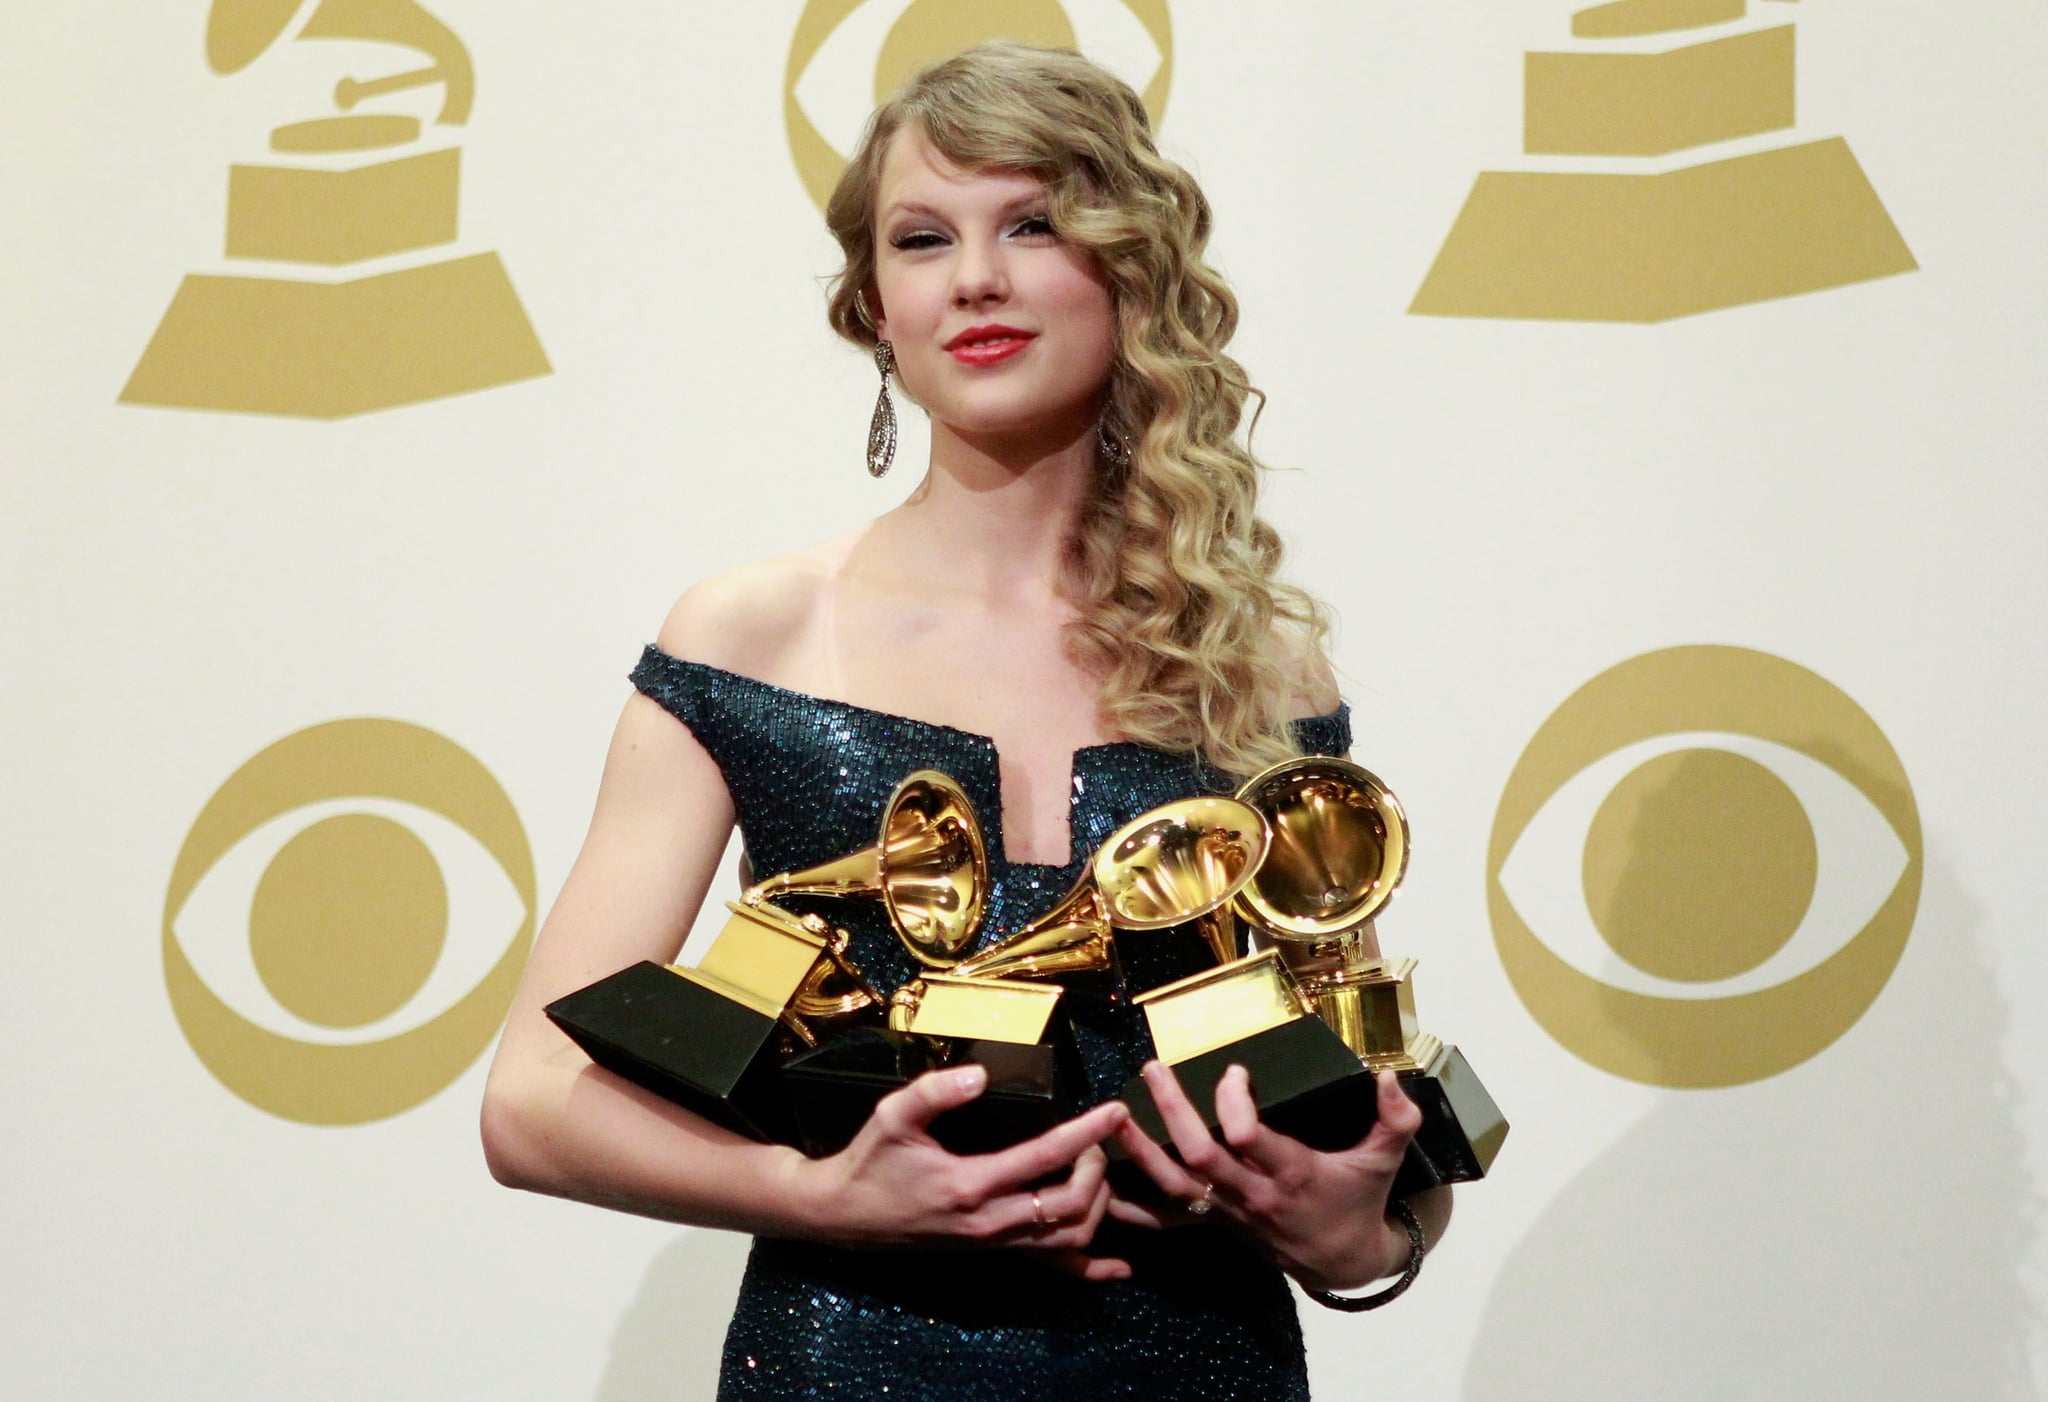 LOS ANGELES, CA - JANUARY 31:  Musician Taylor Swift poses in the press room at the 52nd Annual GRAMMY Awards held at Staples Center on January 31, 2010 in Los Angeles, California.  (Photo by Michael Tran/FilmMagic)